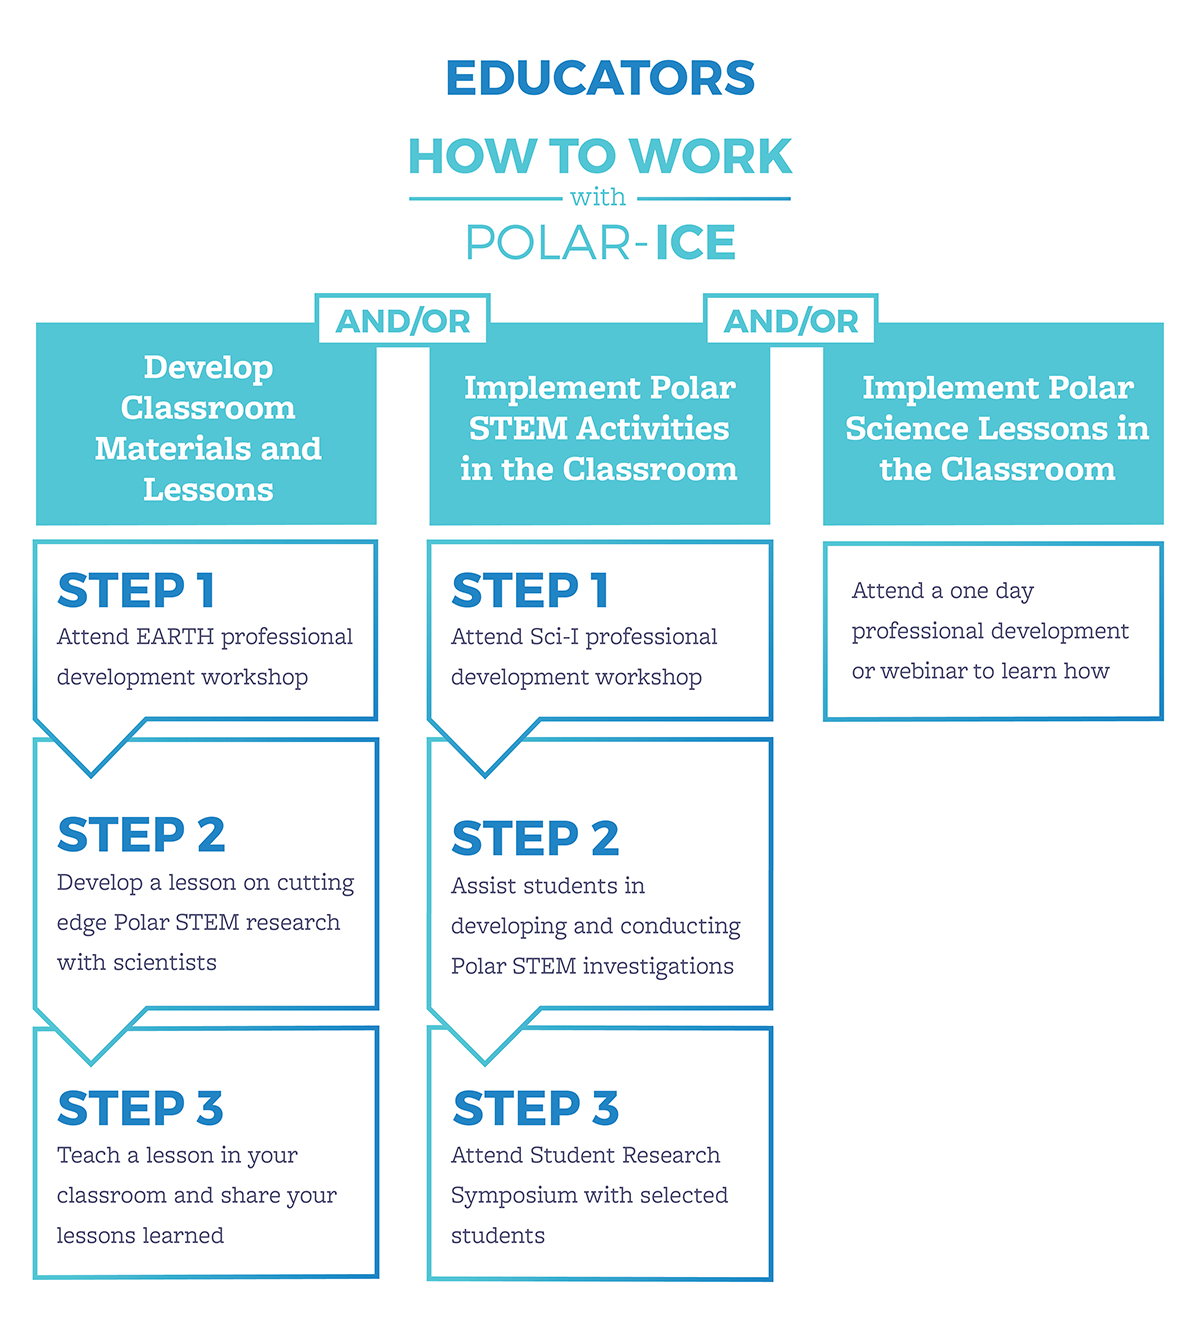 HowtoWork_Educators